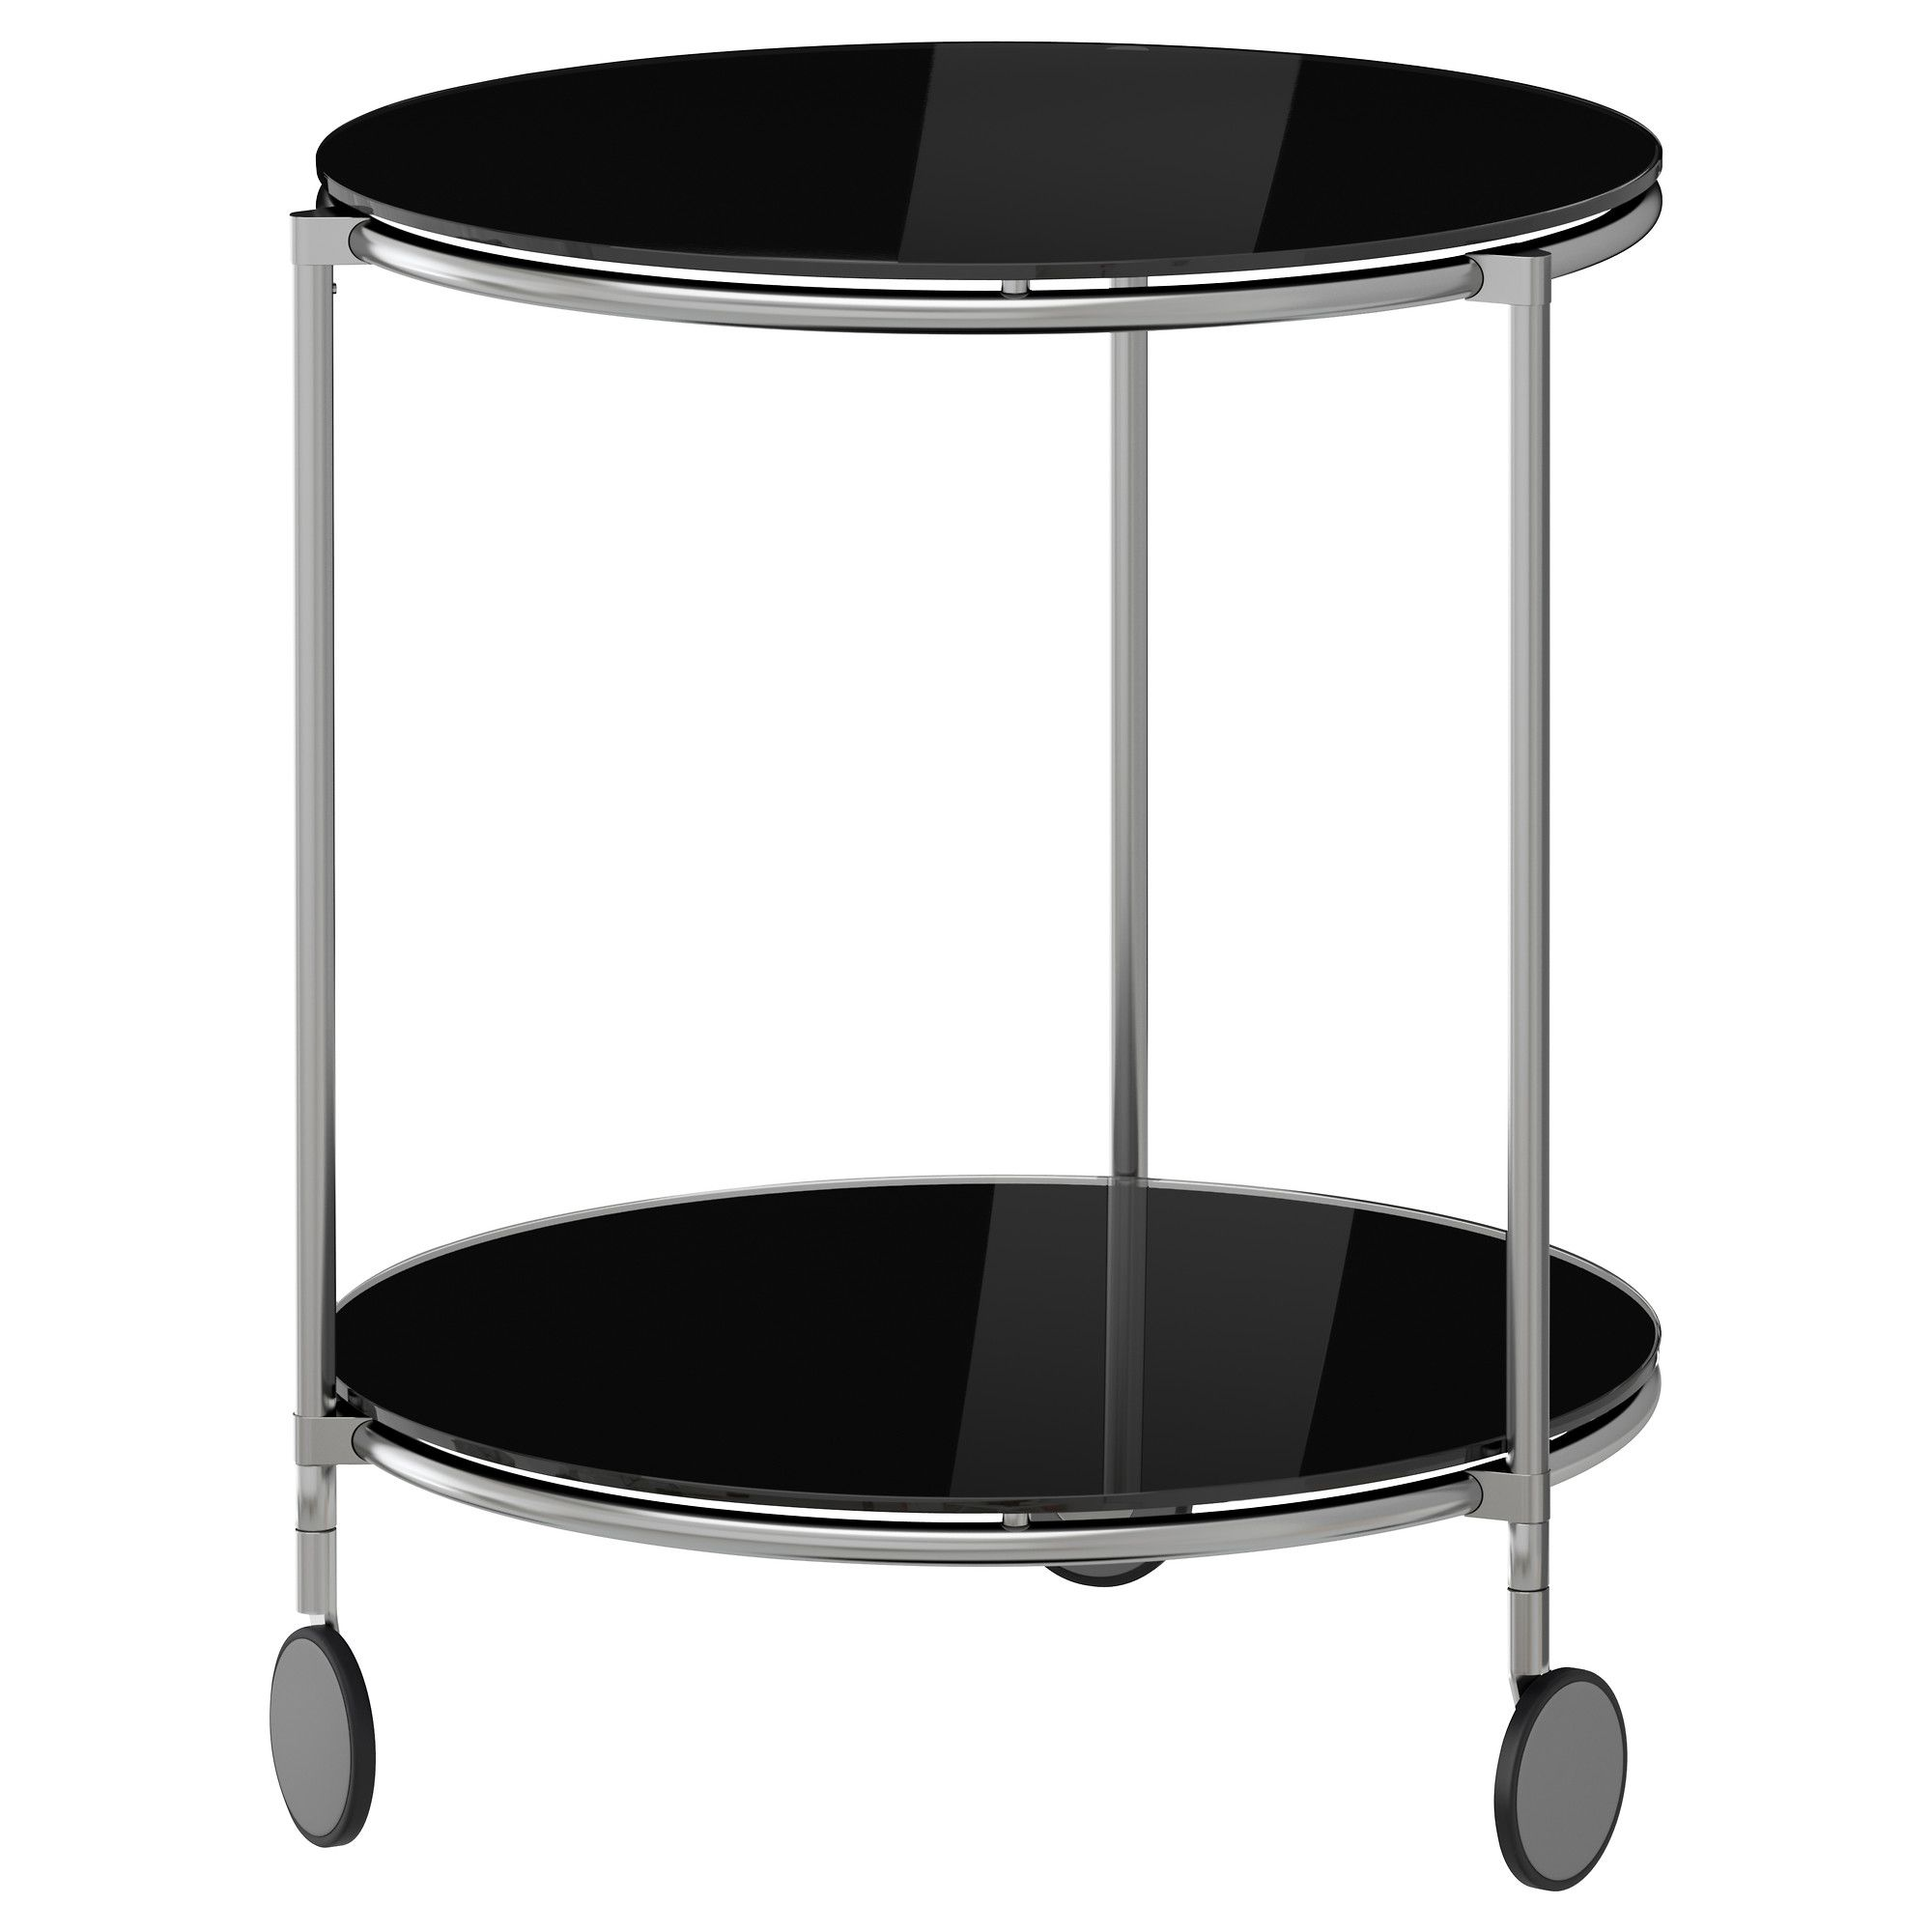 has a swivel out table top for stashing thangss STRIND Side table